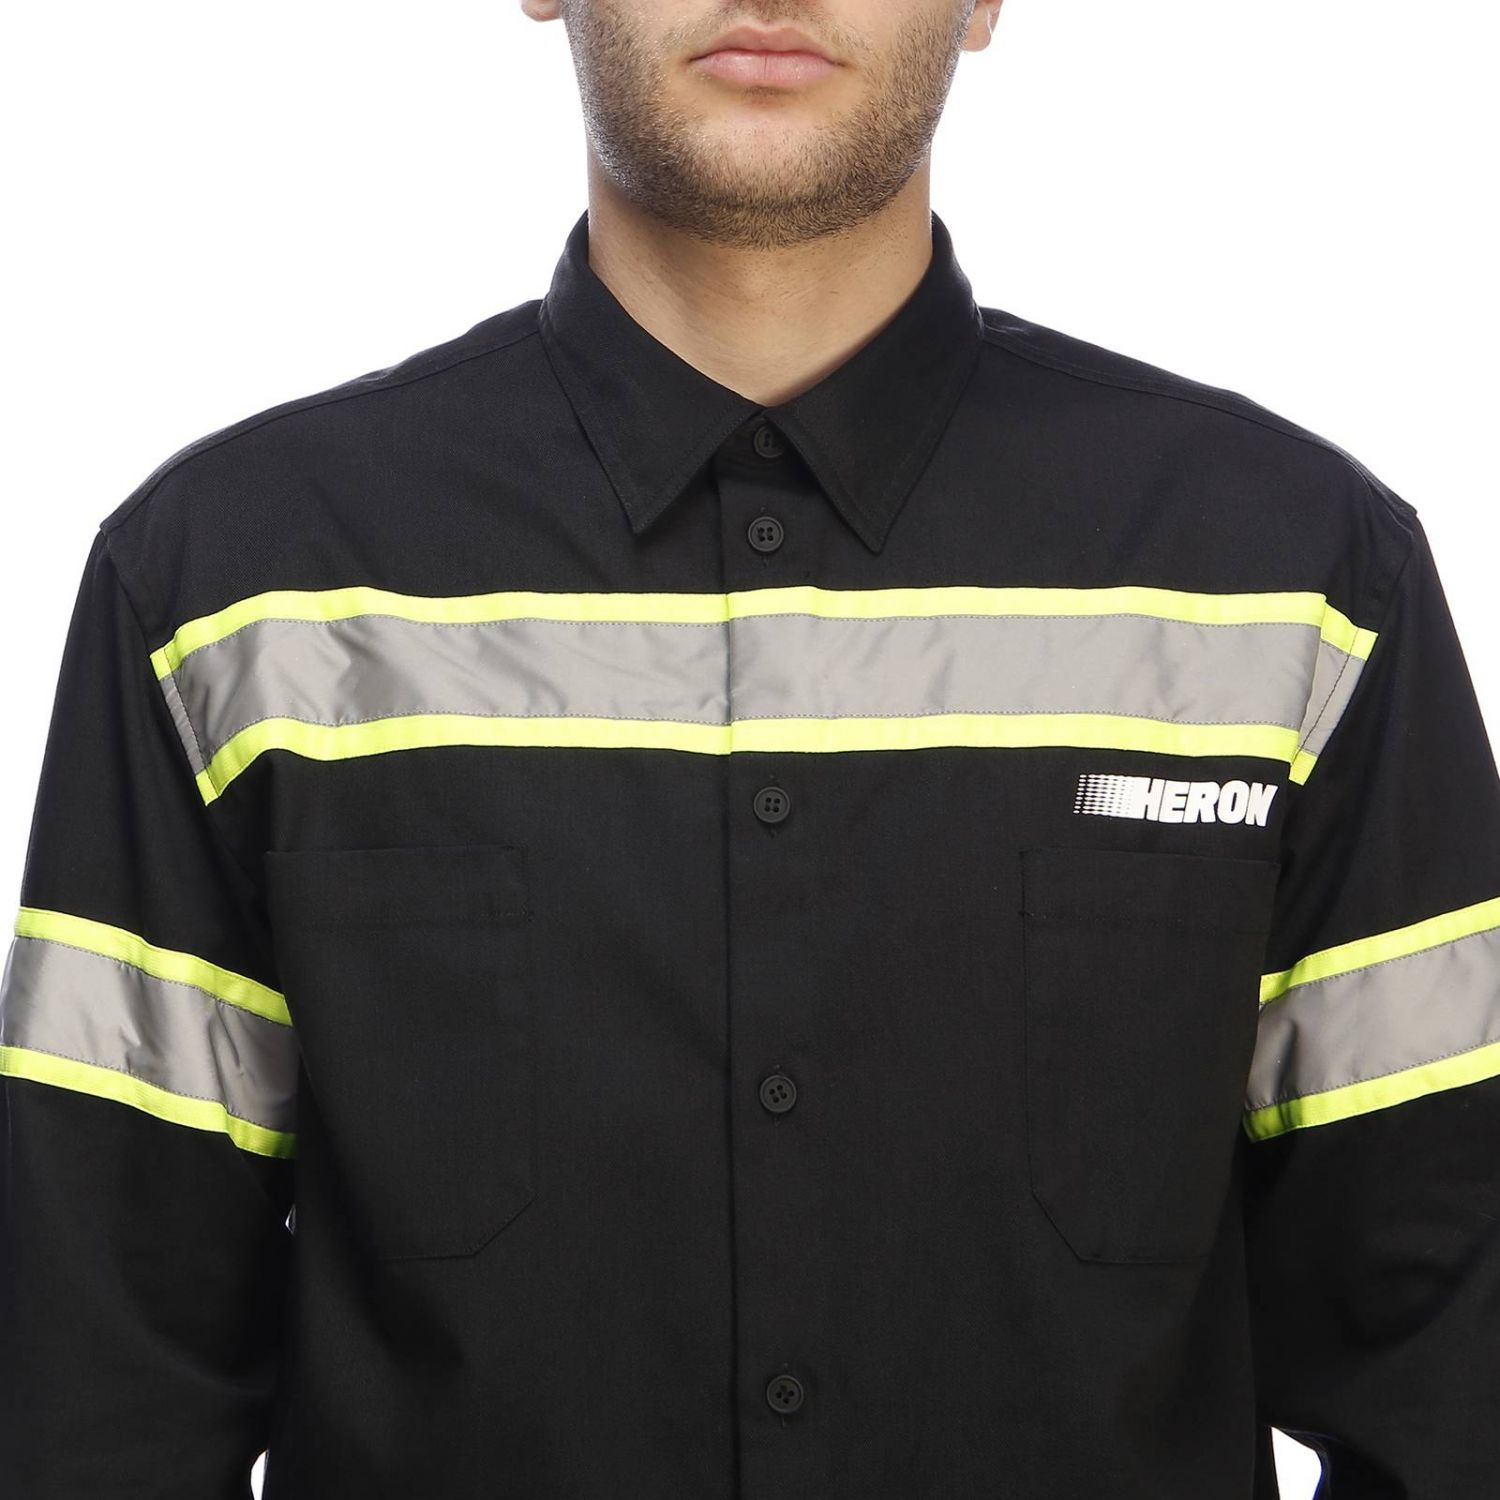 Shirt men Heron Preston black 4